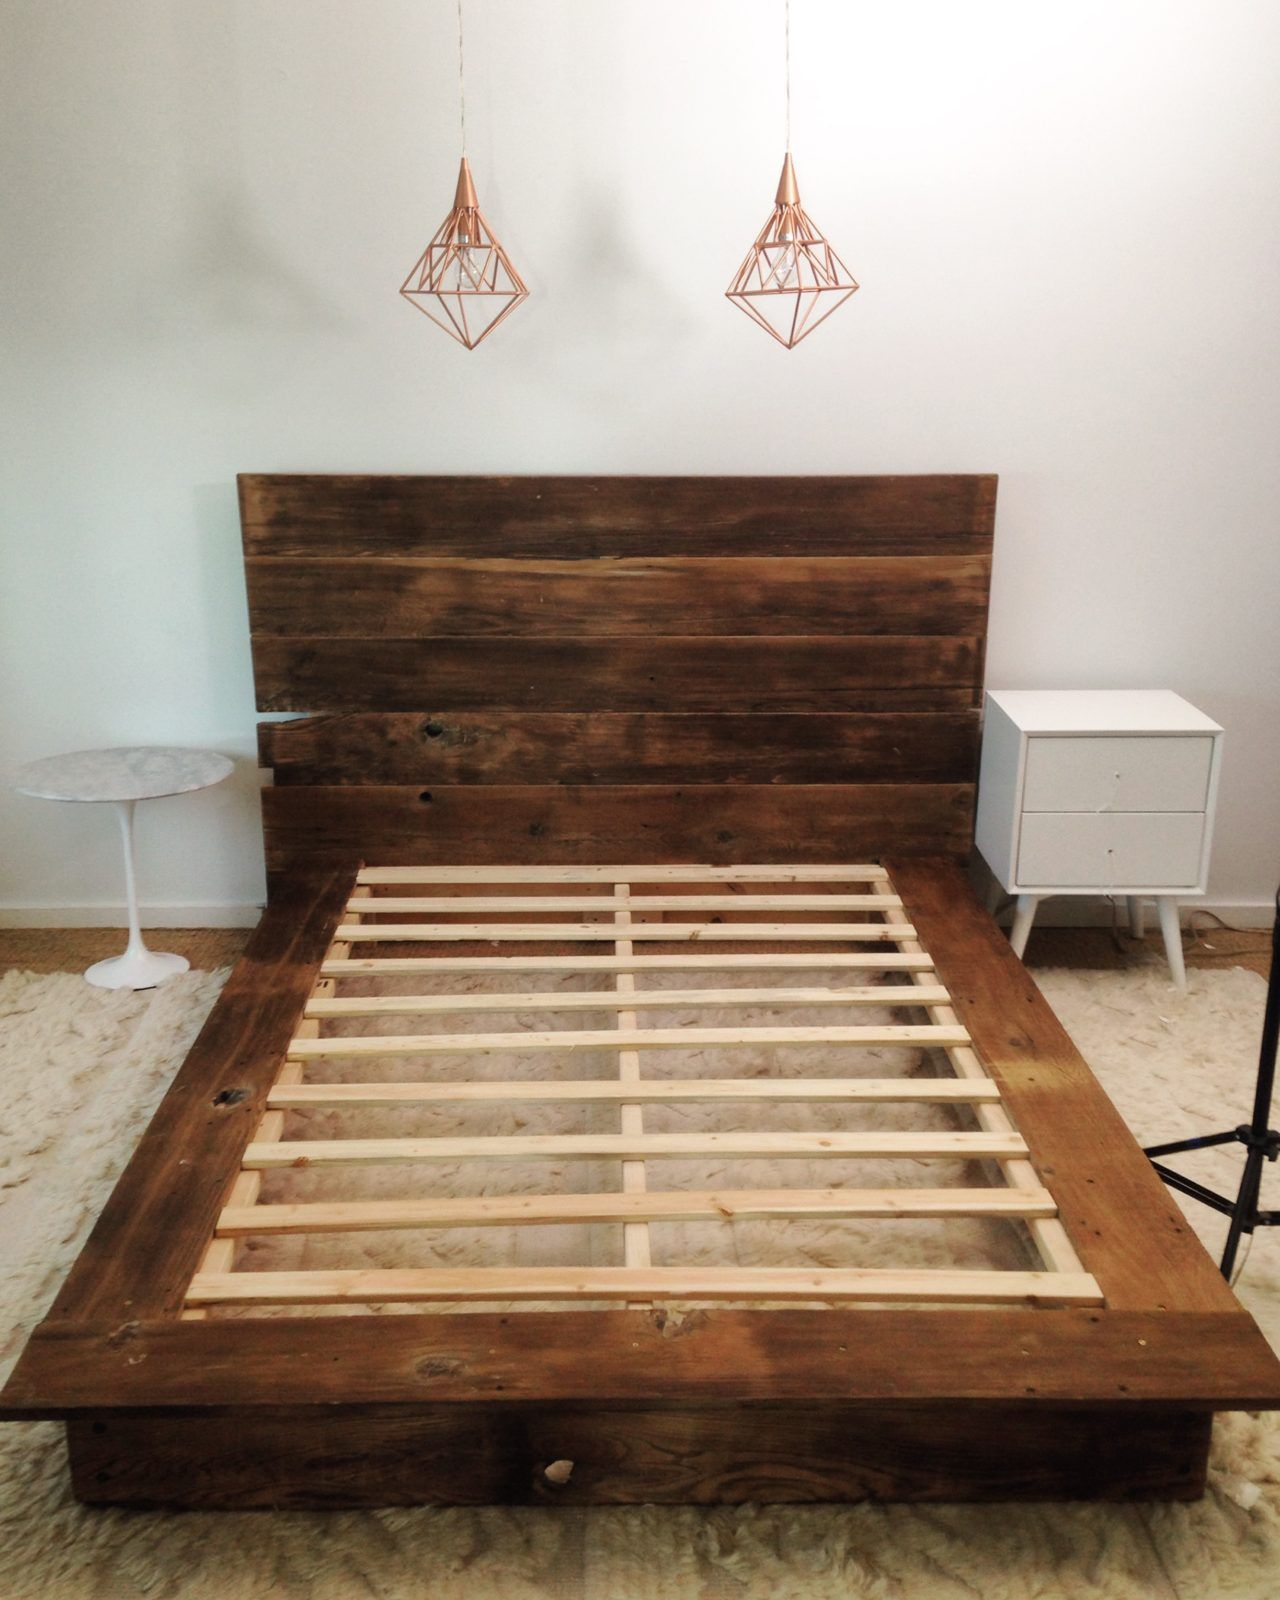 DIY Reclaimed Wood Platform Bed in 2019 | Home | Pinterest | Diy